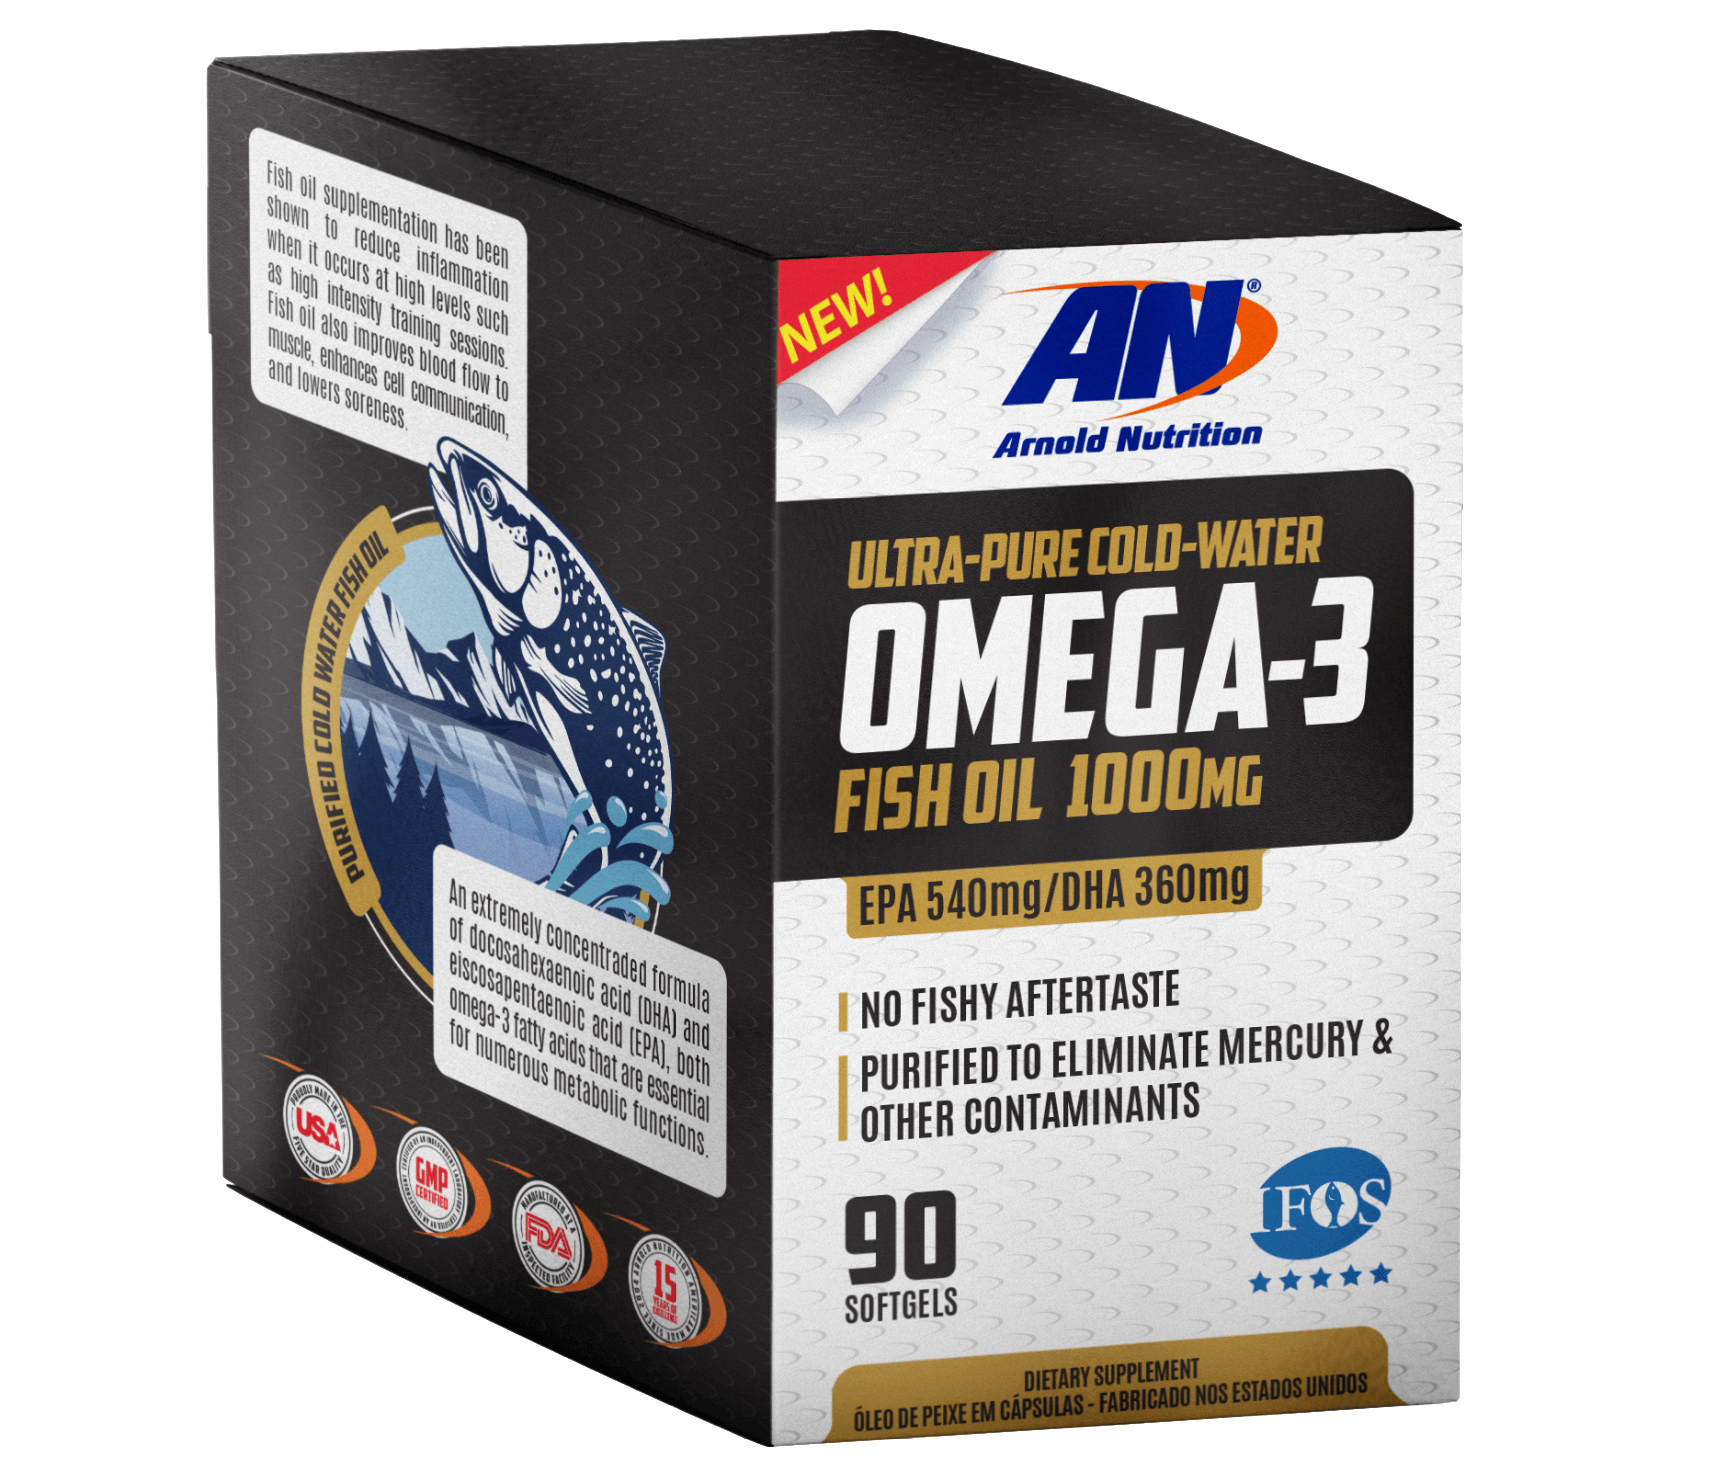 omega-3 top therm norwegian aracy arnold nutrition